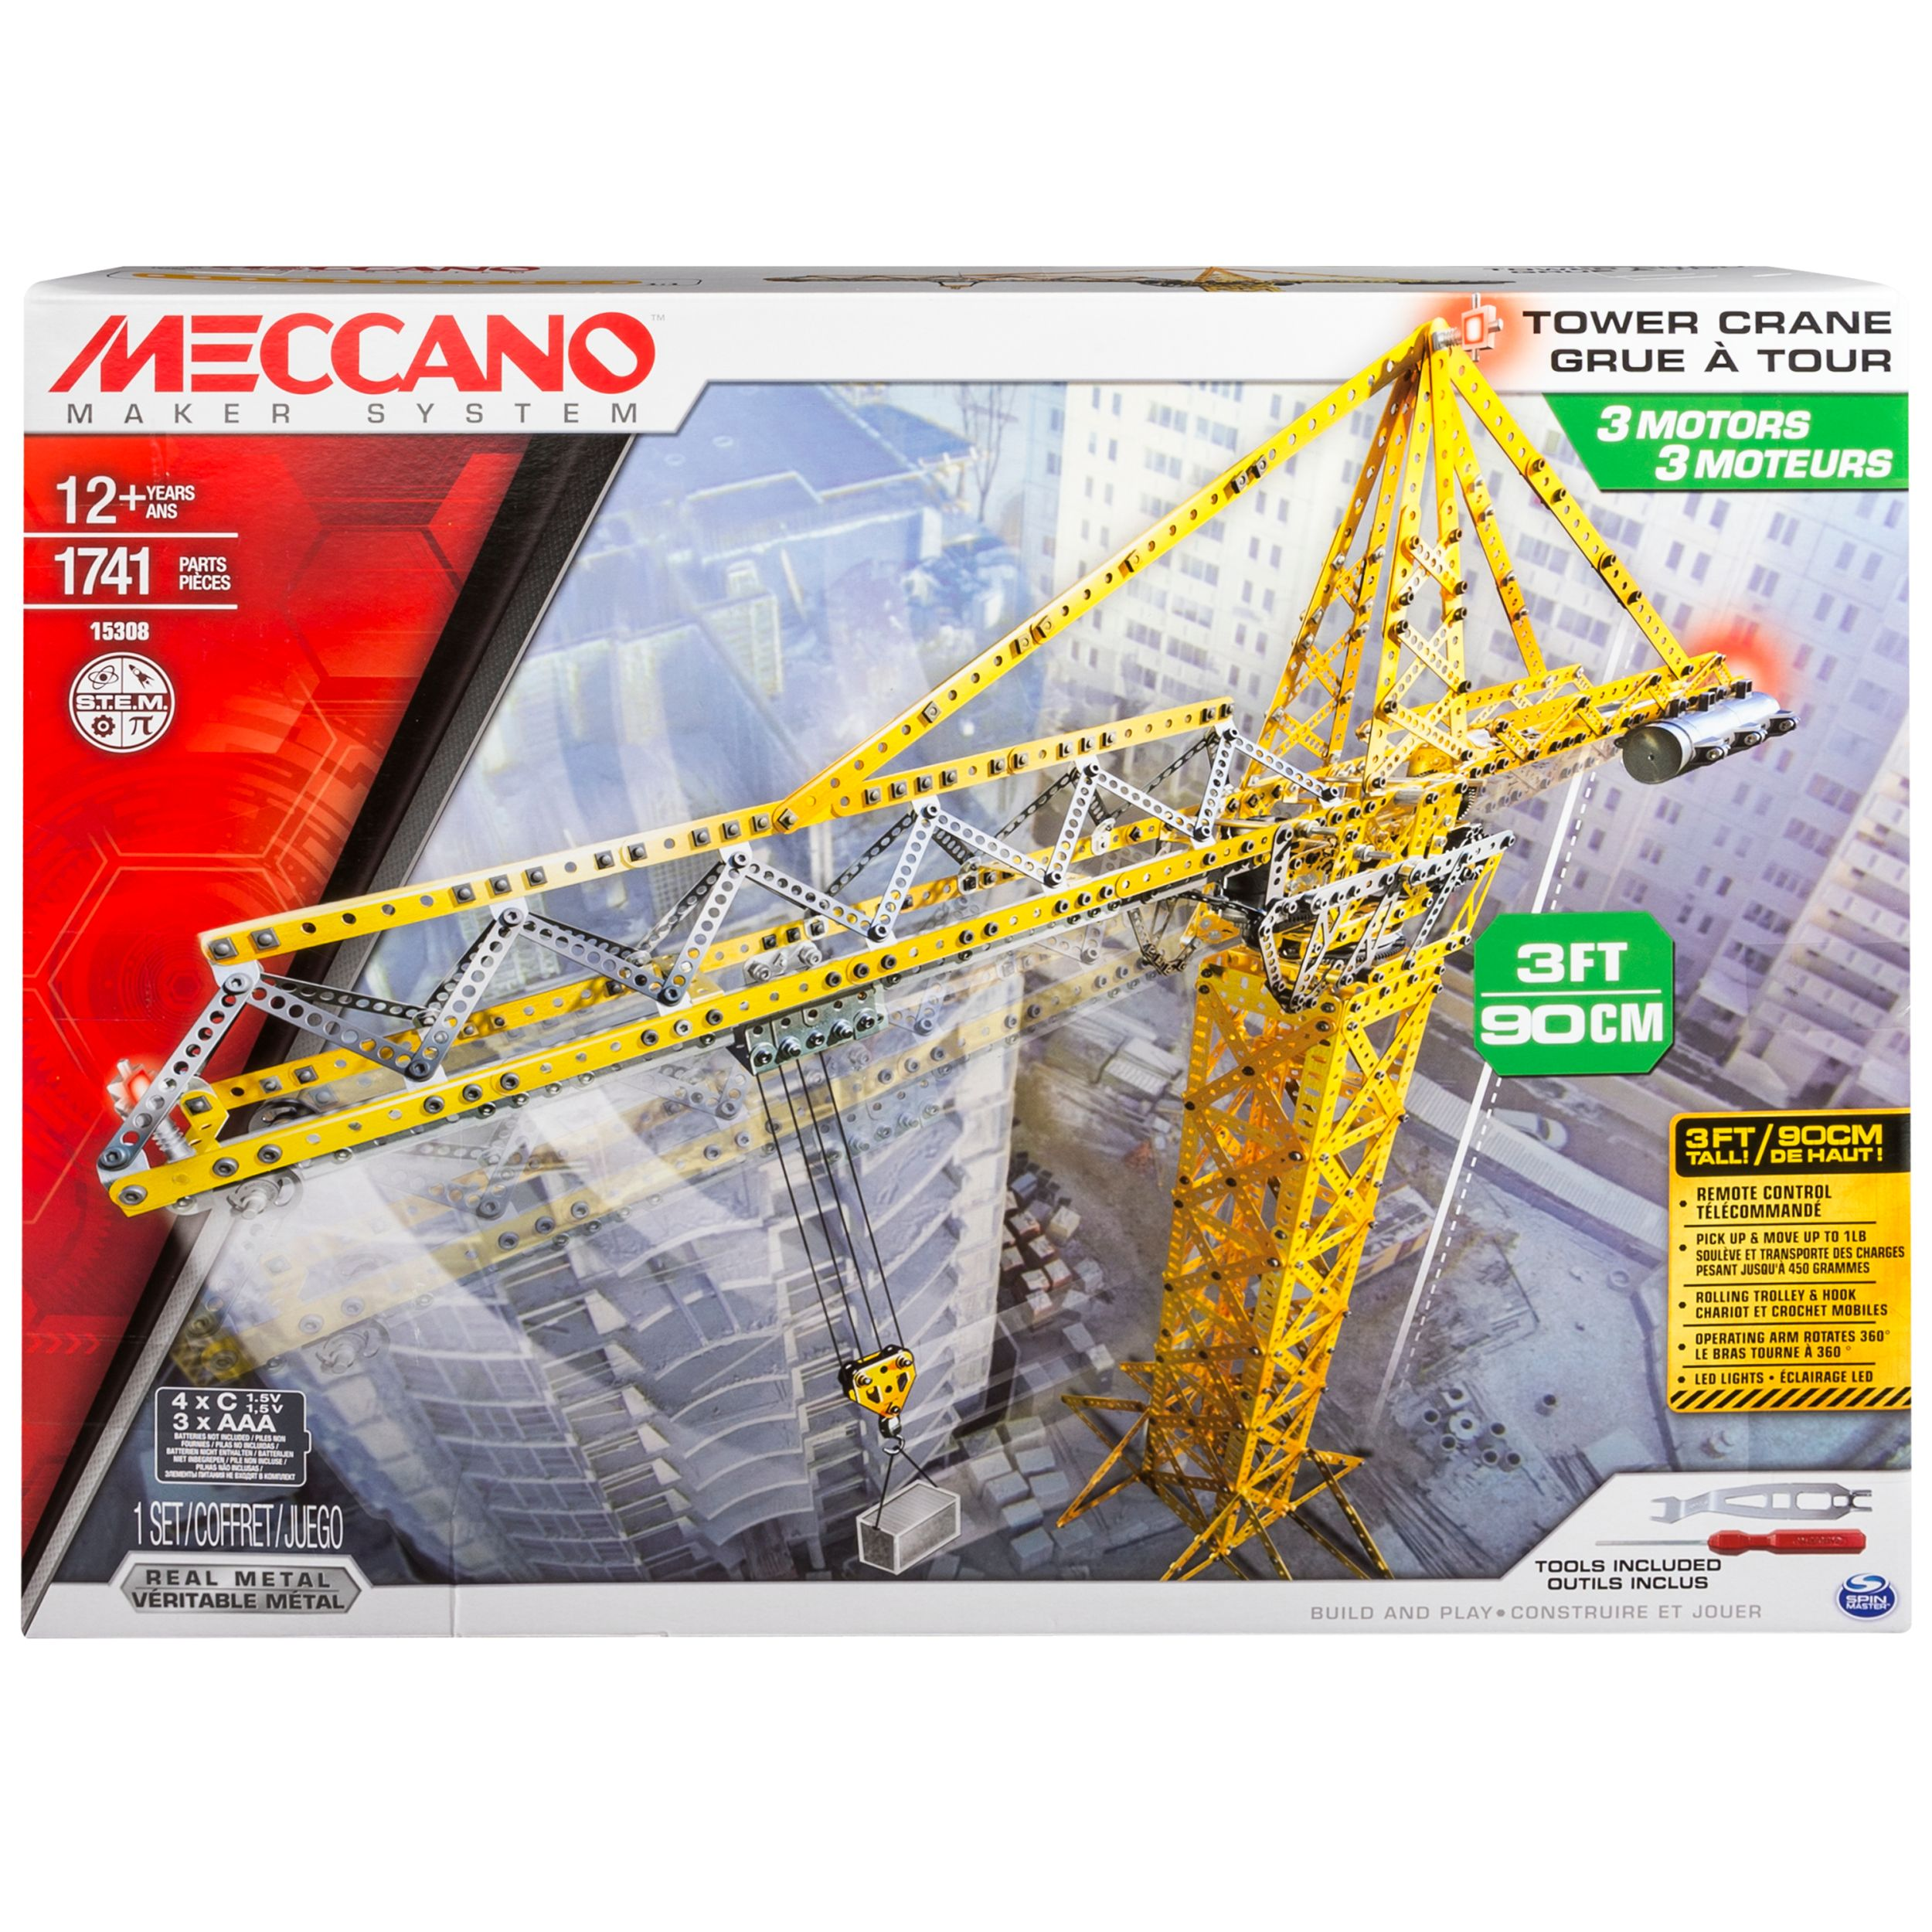 Meccano by Erector, 3 ft Tower Crane Model Building Kit